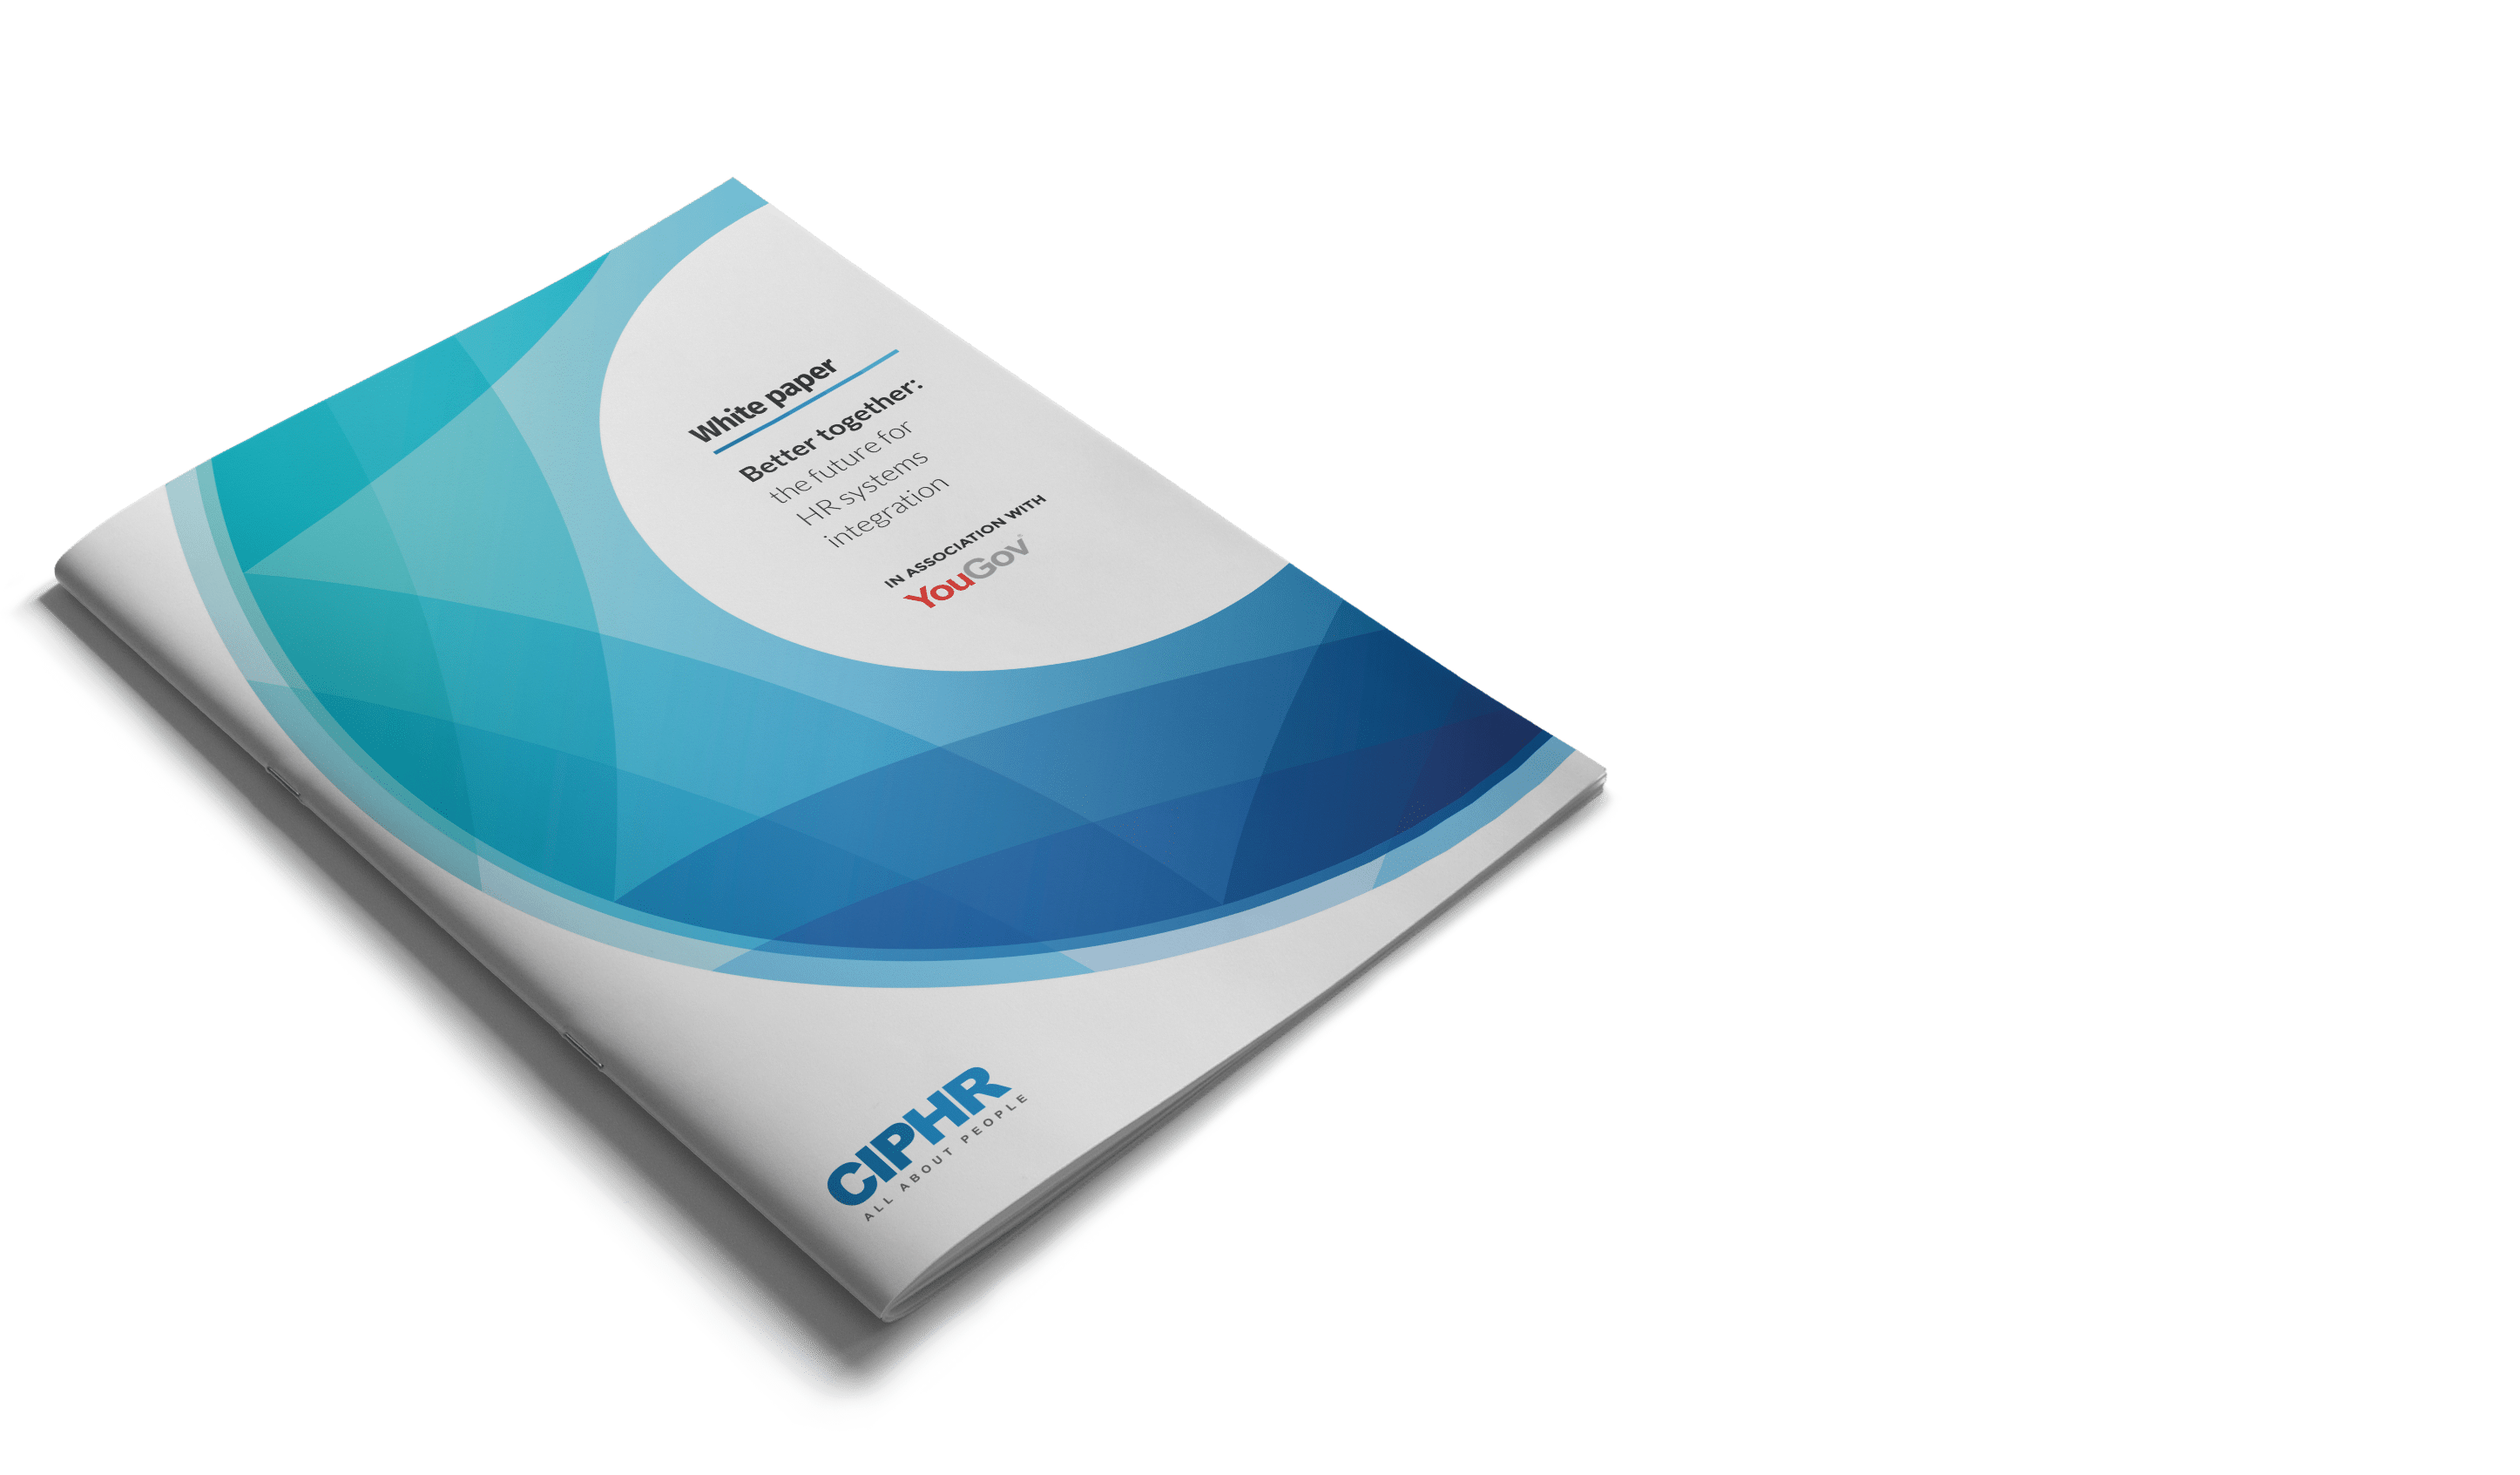 ciphr hr systems integration whitepaper